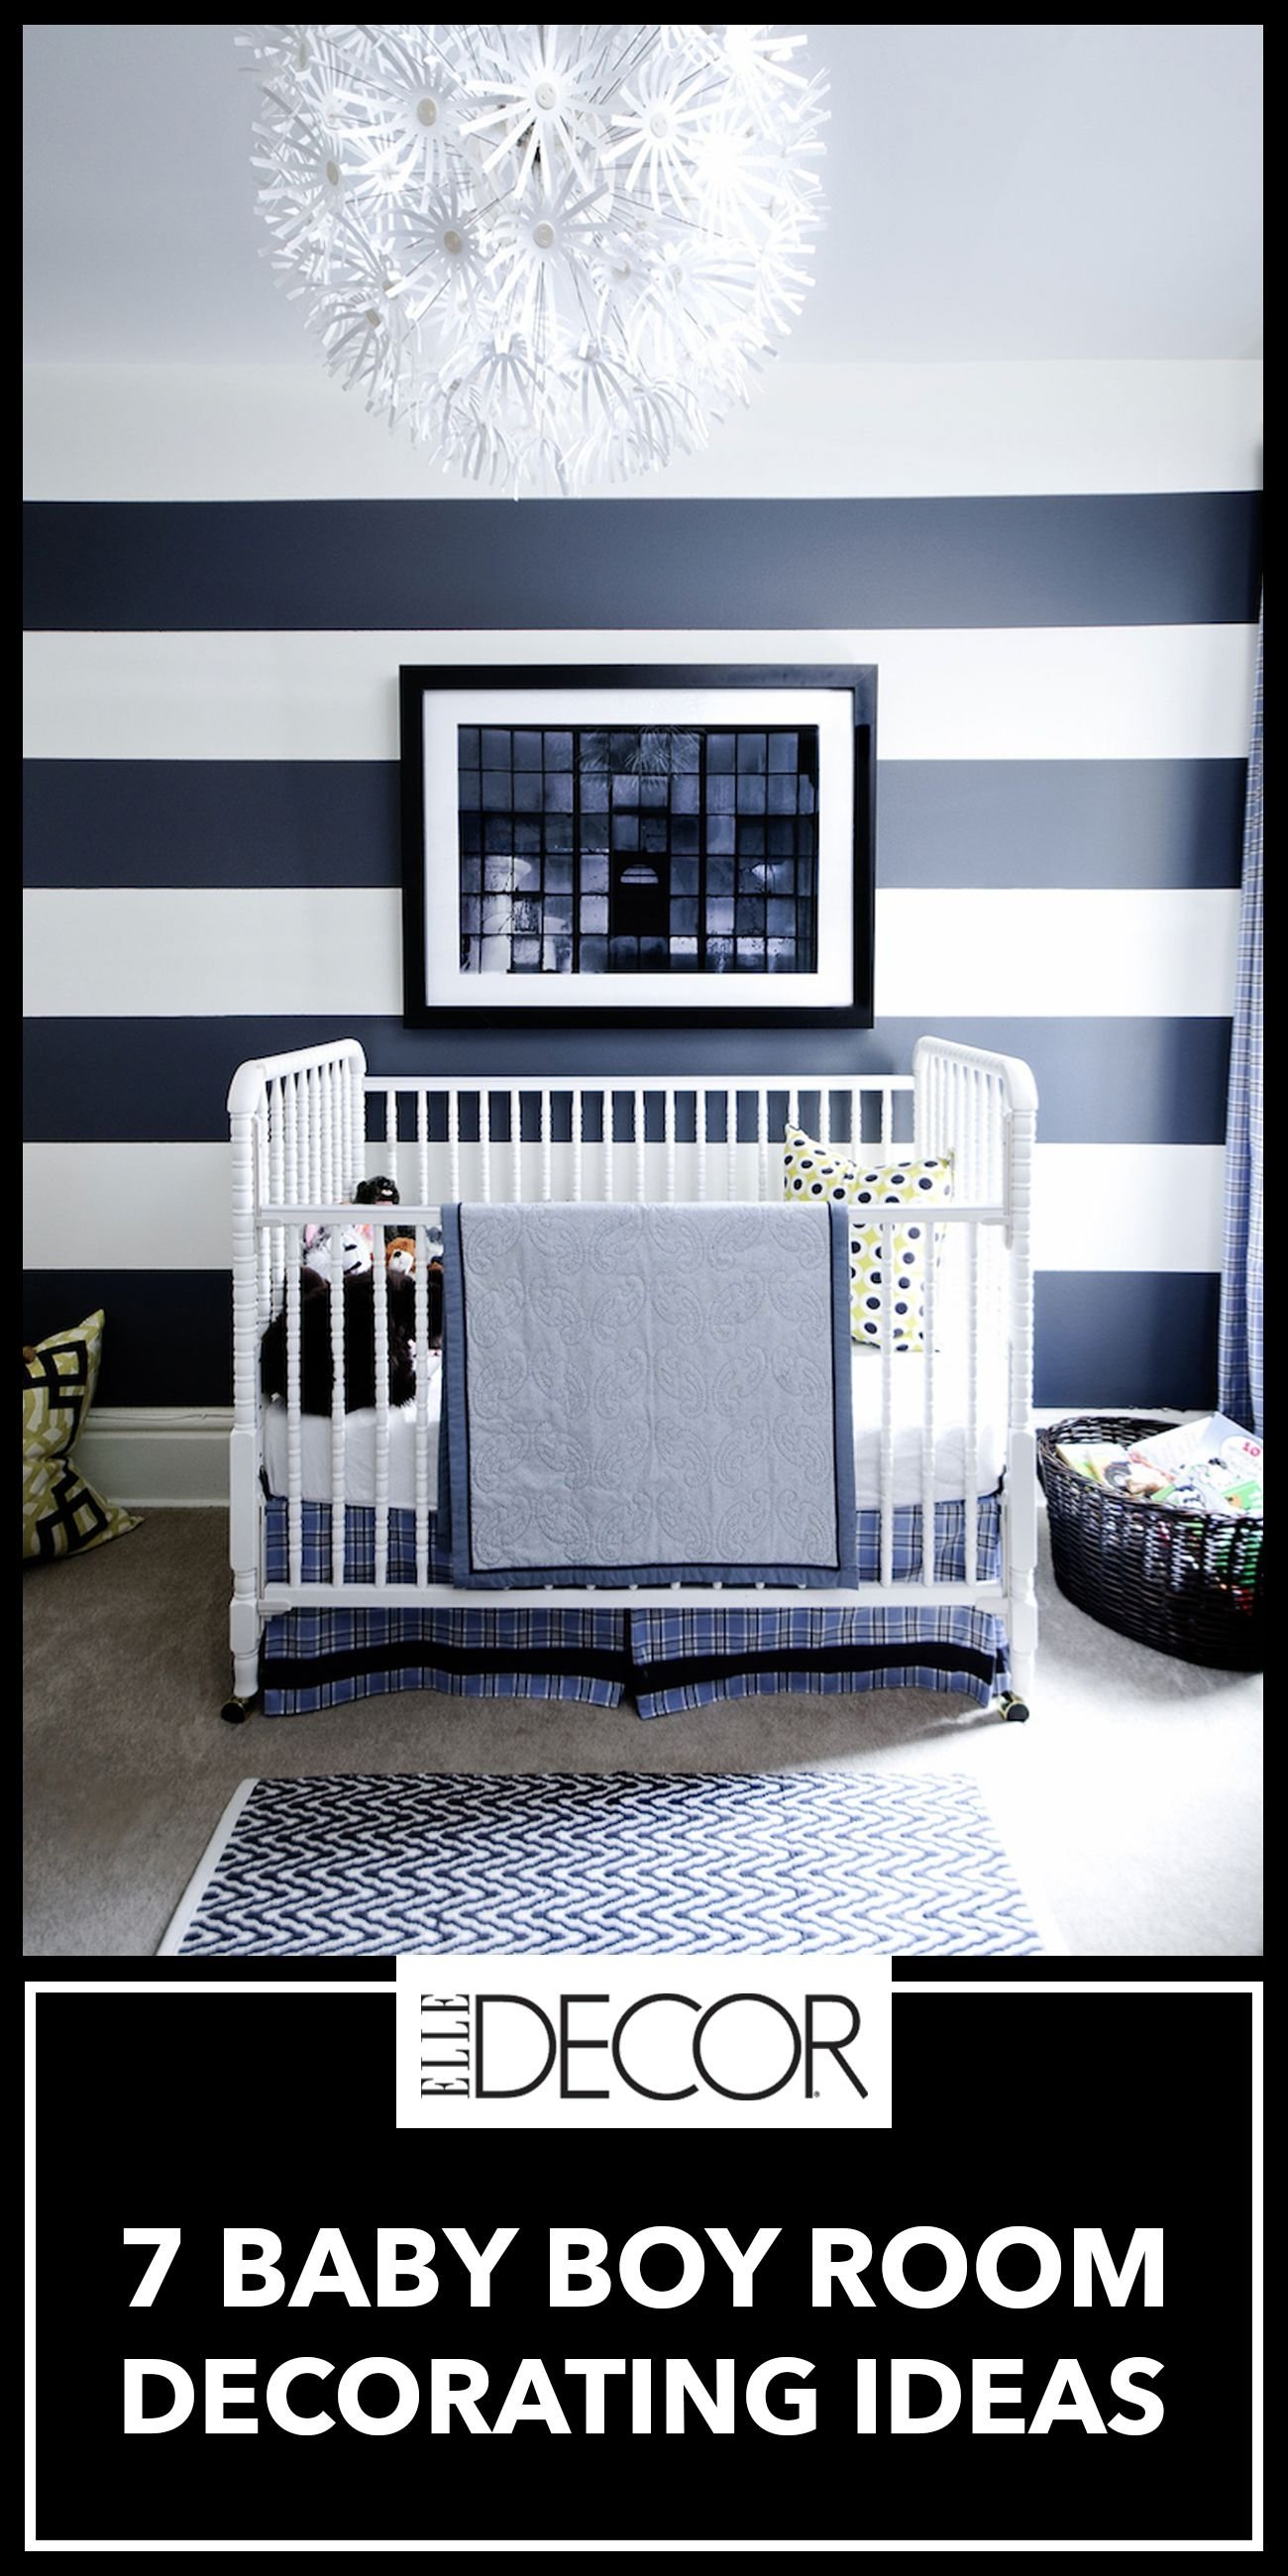 10 Lovely Baby Boy Room Decorating Ideas 7 baby boy room ideas cute boy nursery decorating ideas 2 2020